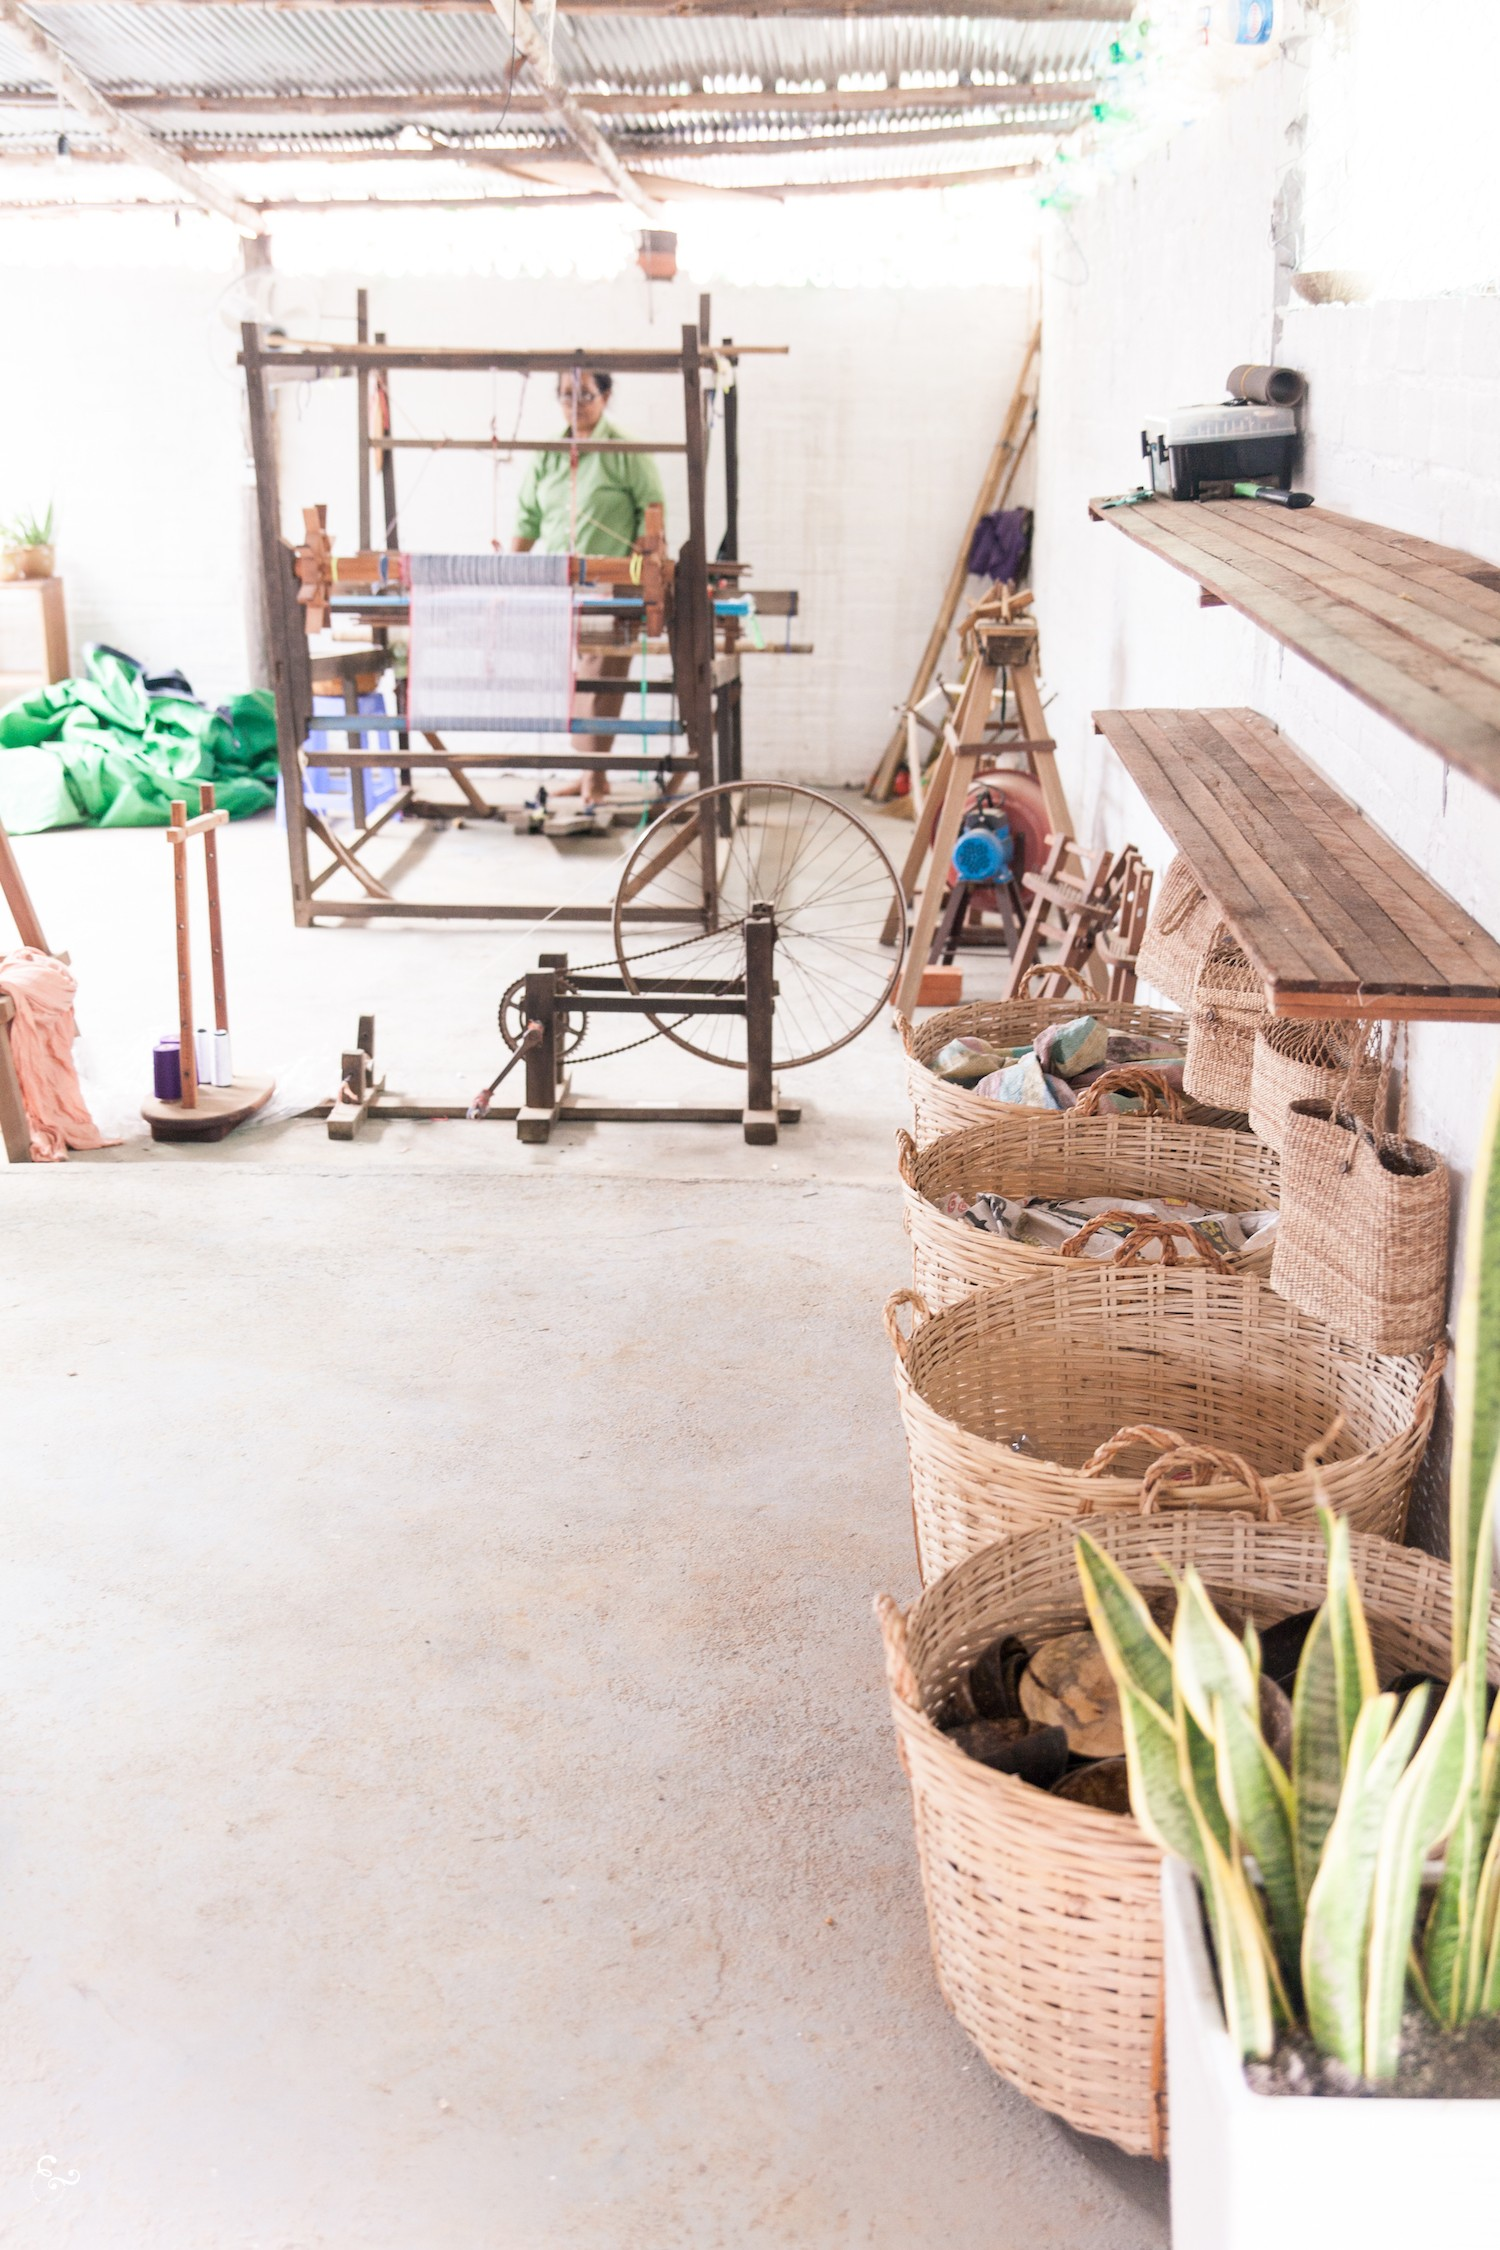 Nowhere & Everywhere Renovation Sewing Production Centre Studio Environmentalism Cambodia Sustainability Ethical Labor